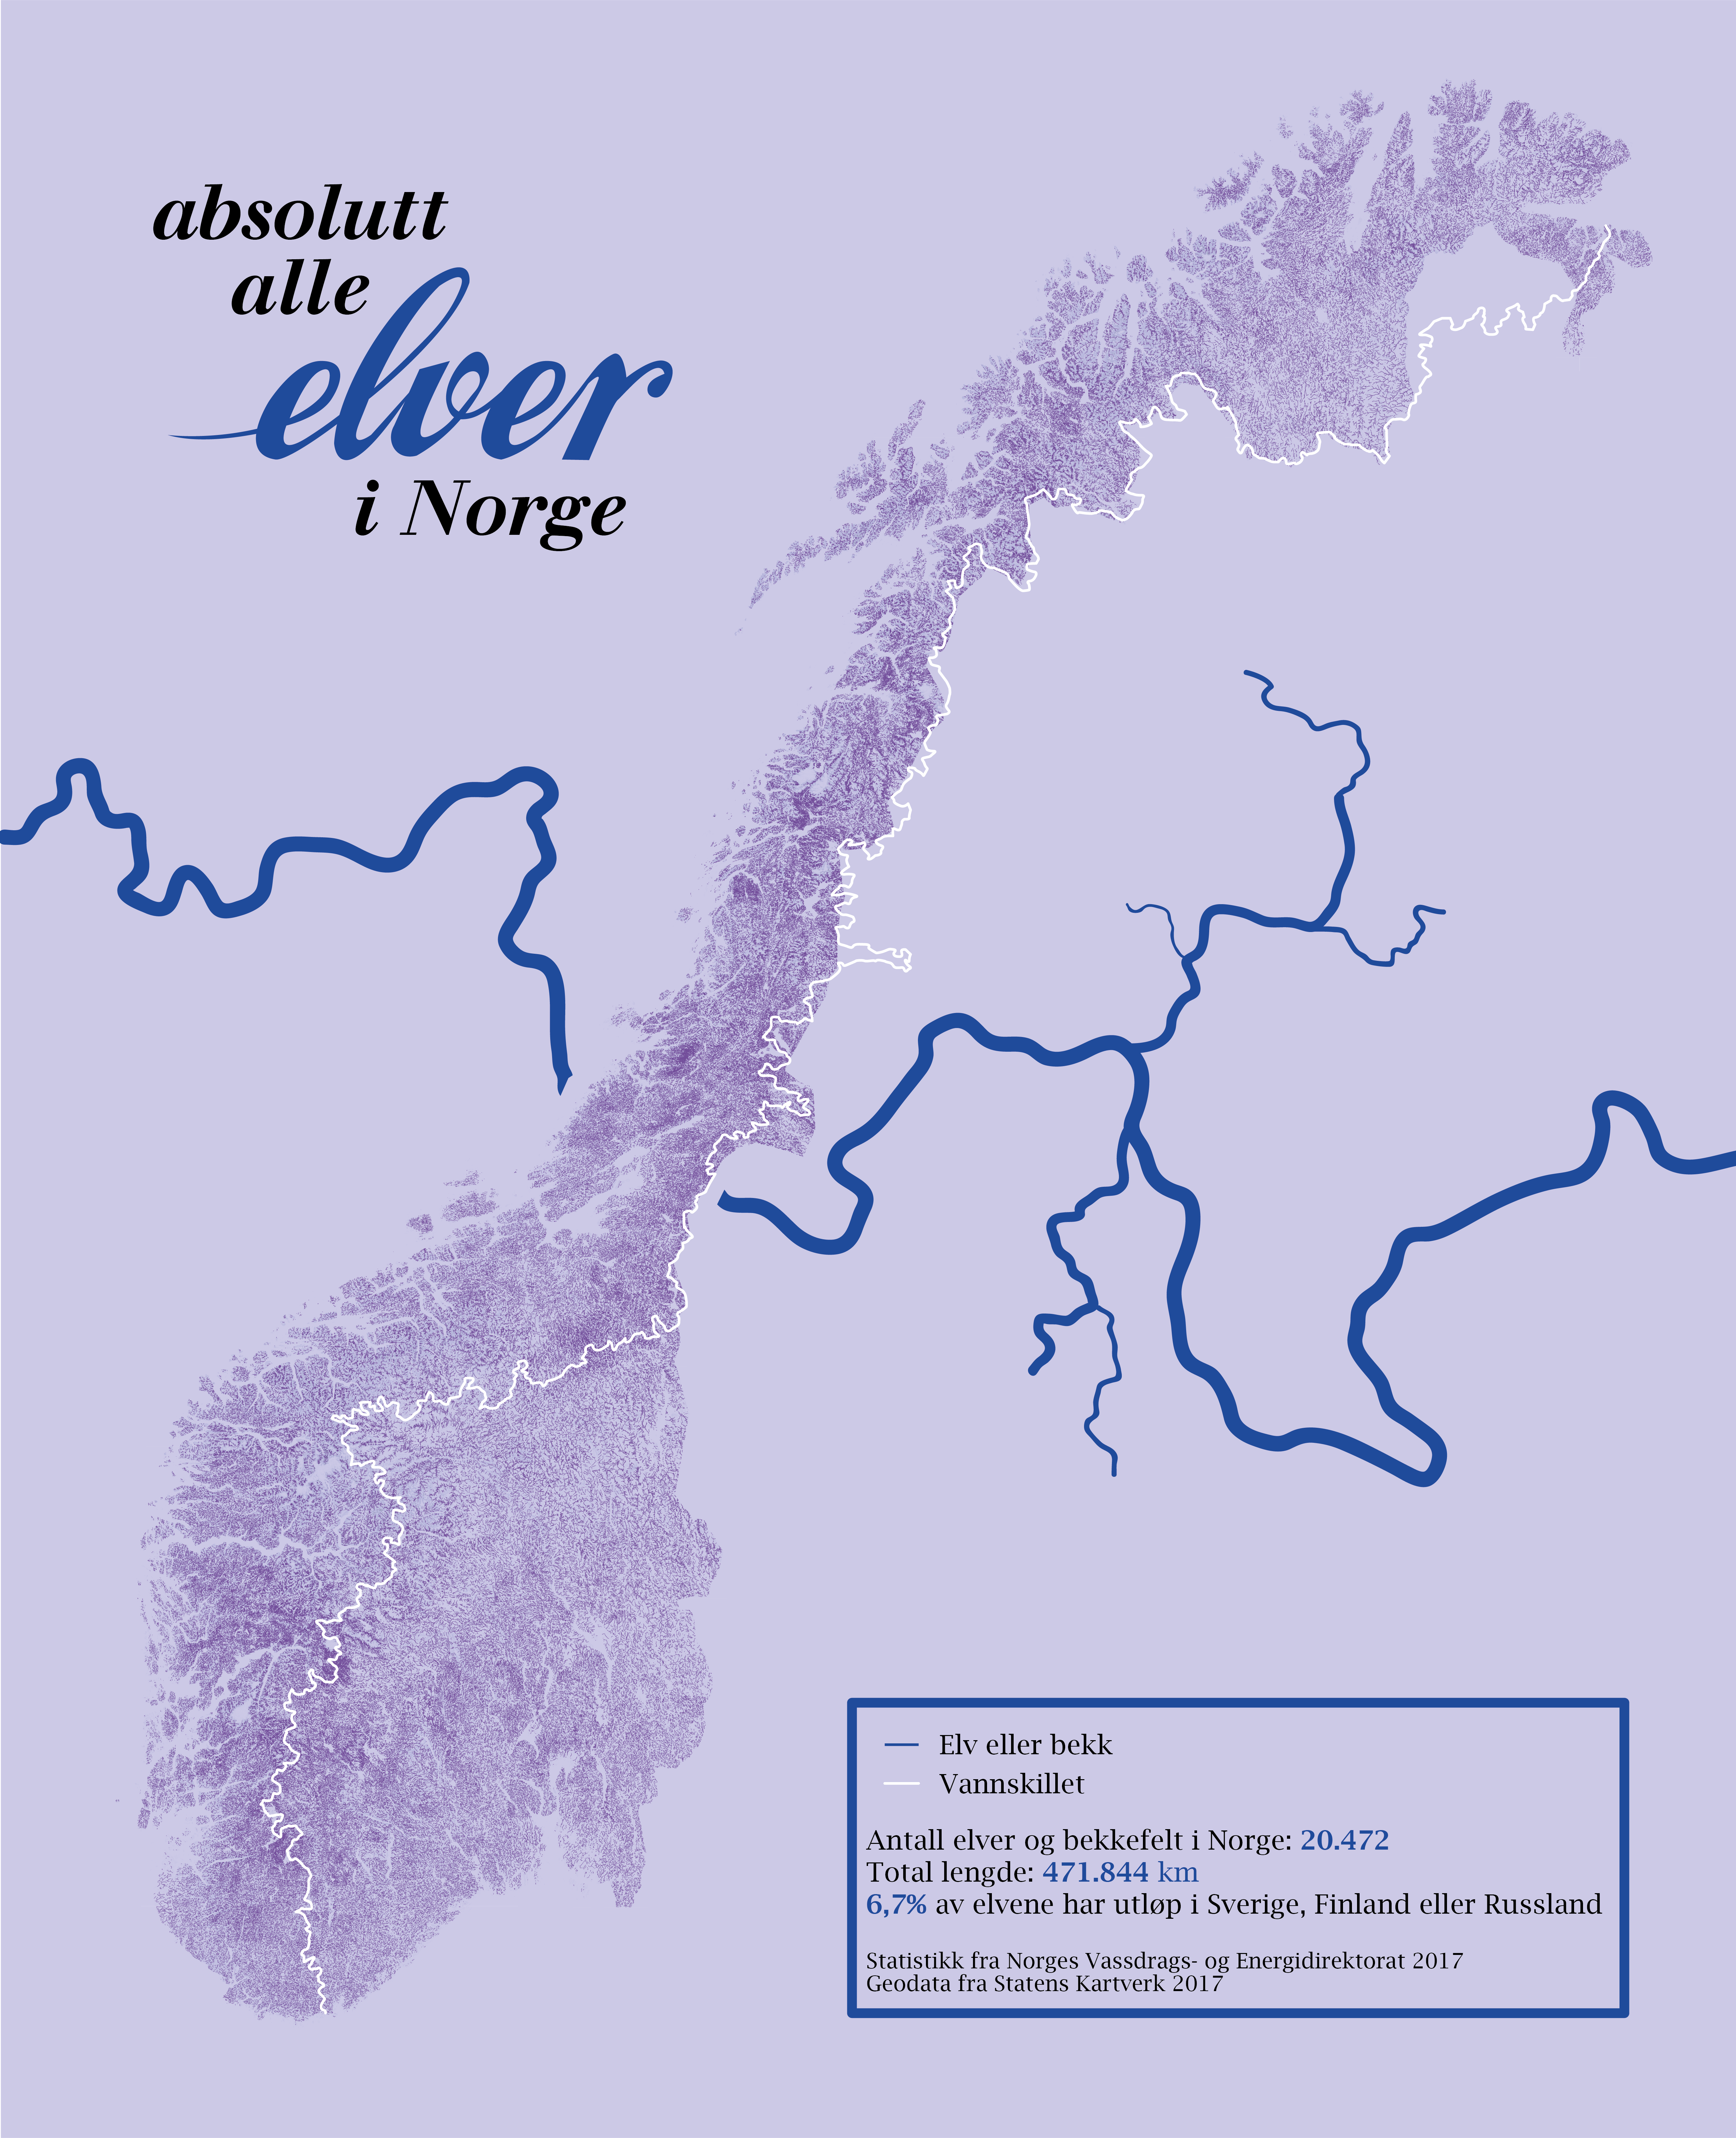 kart over elver Every river and stream in Norway [5424 x 6680] : MapPorn kart over elver